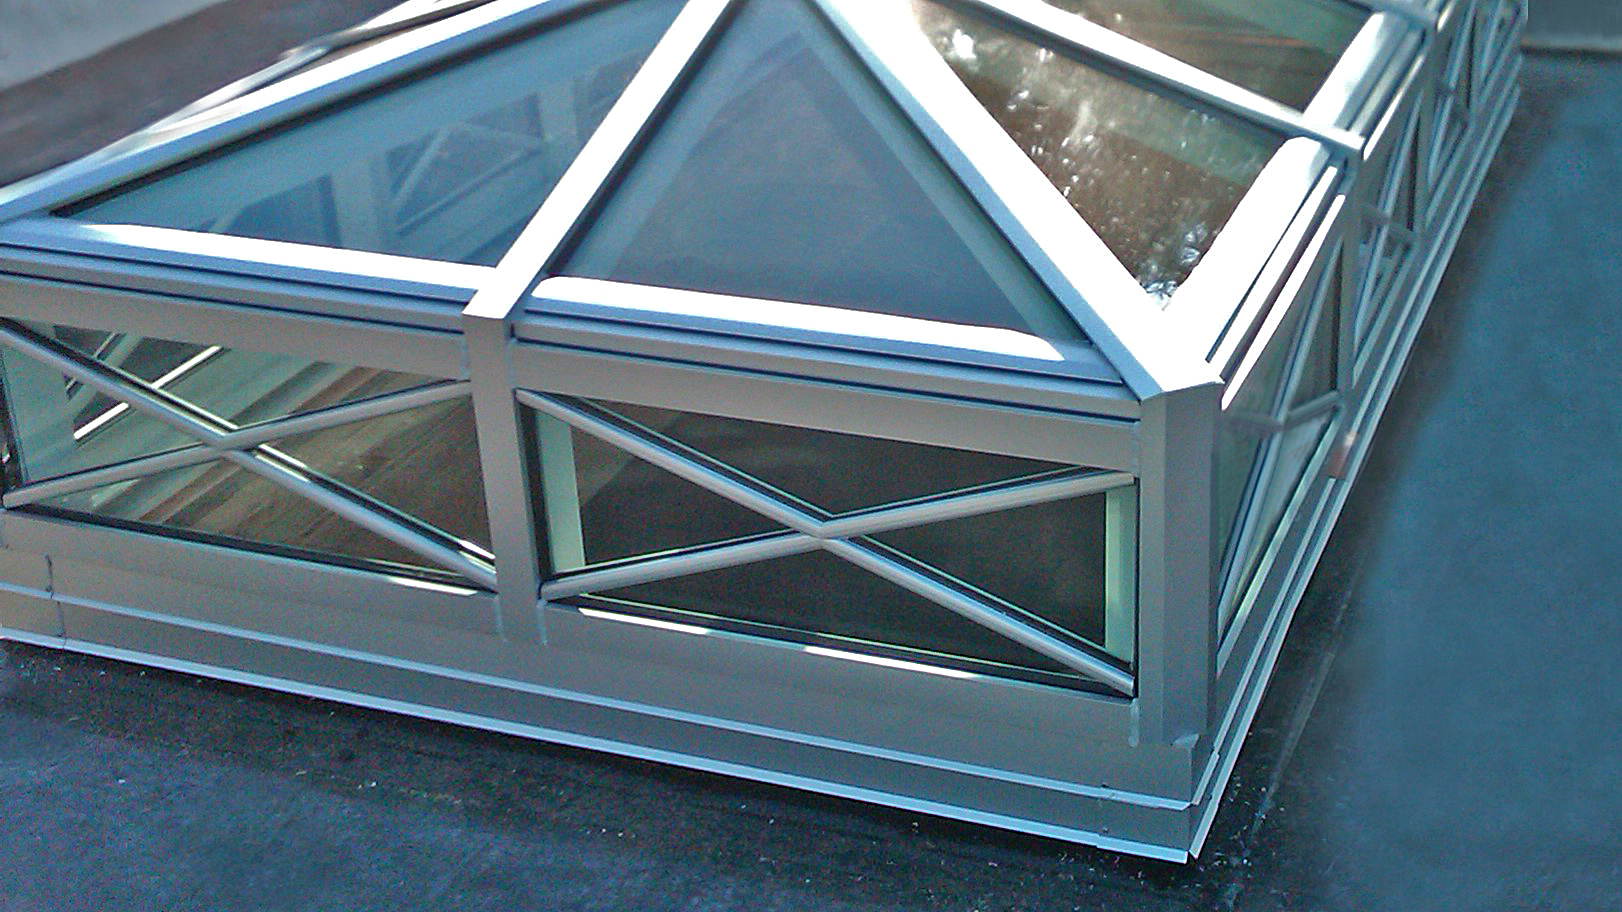 Double pitch skylight with two gable ends and transom.